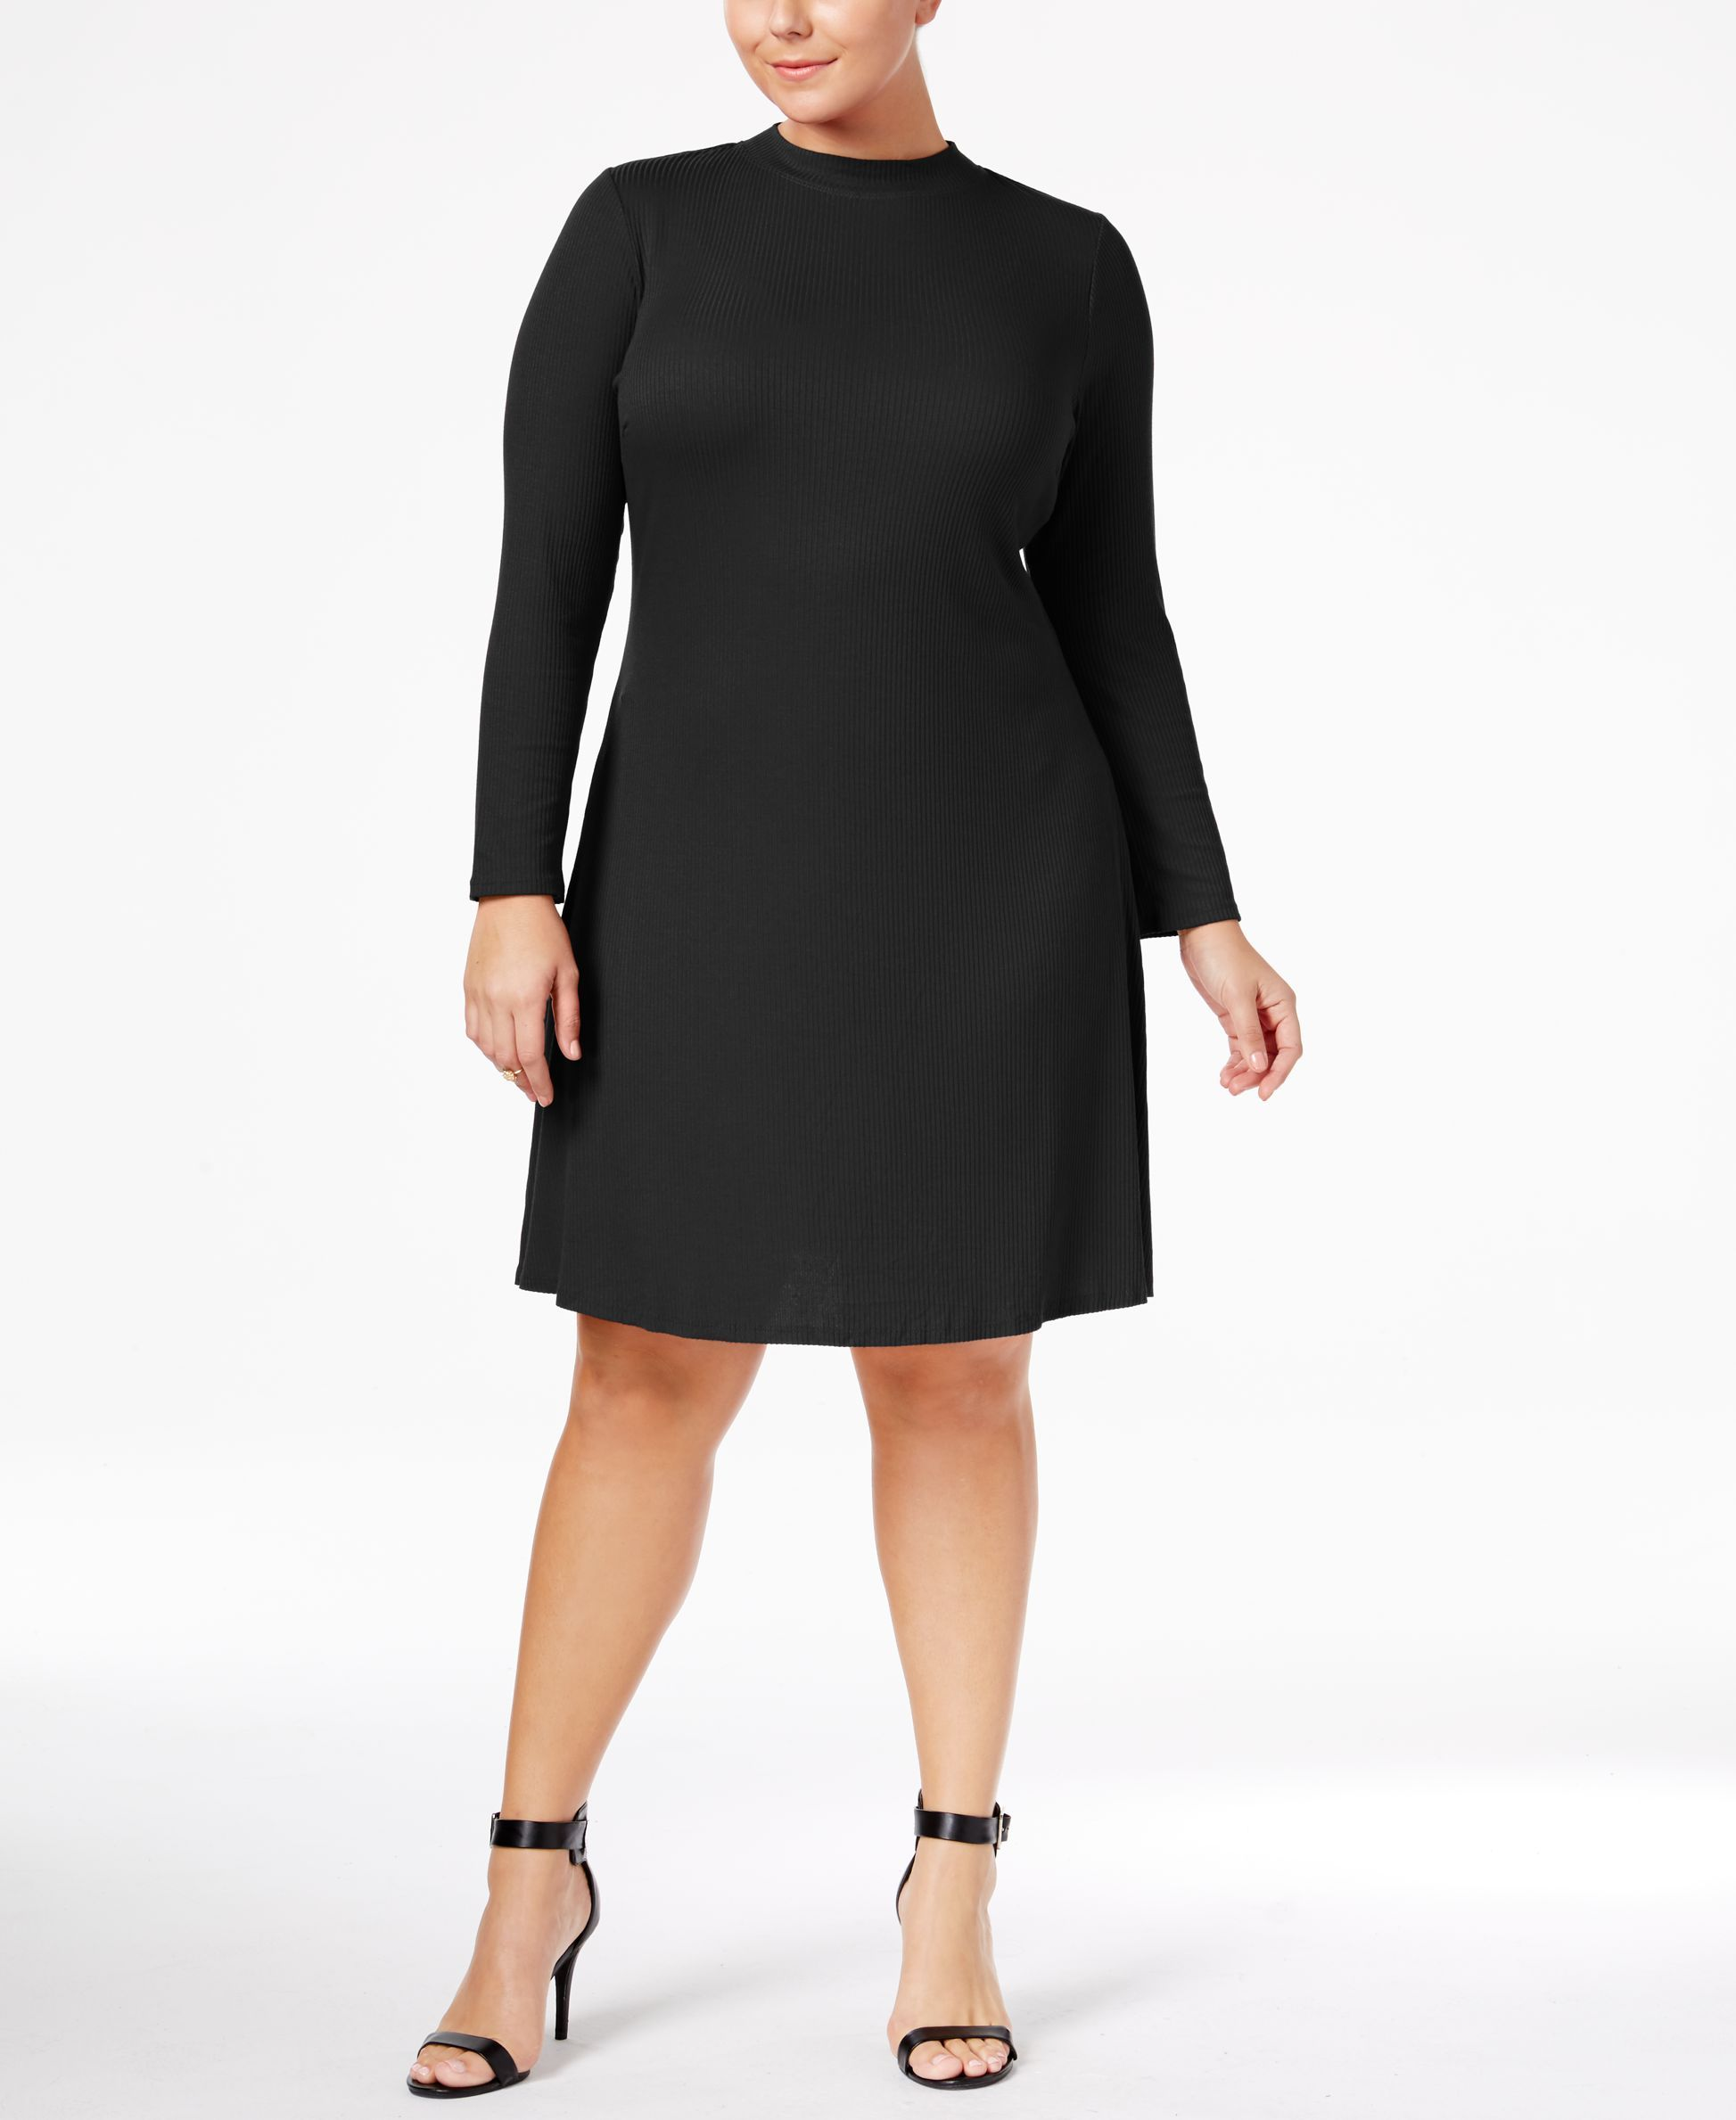 cac0103aea Love Squared Trendy Plus Size Mock-Neck Sweater Dress